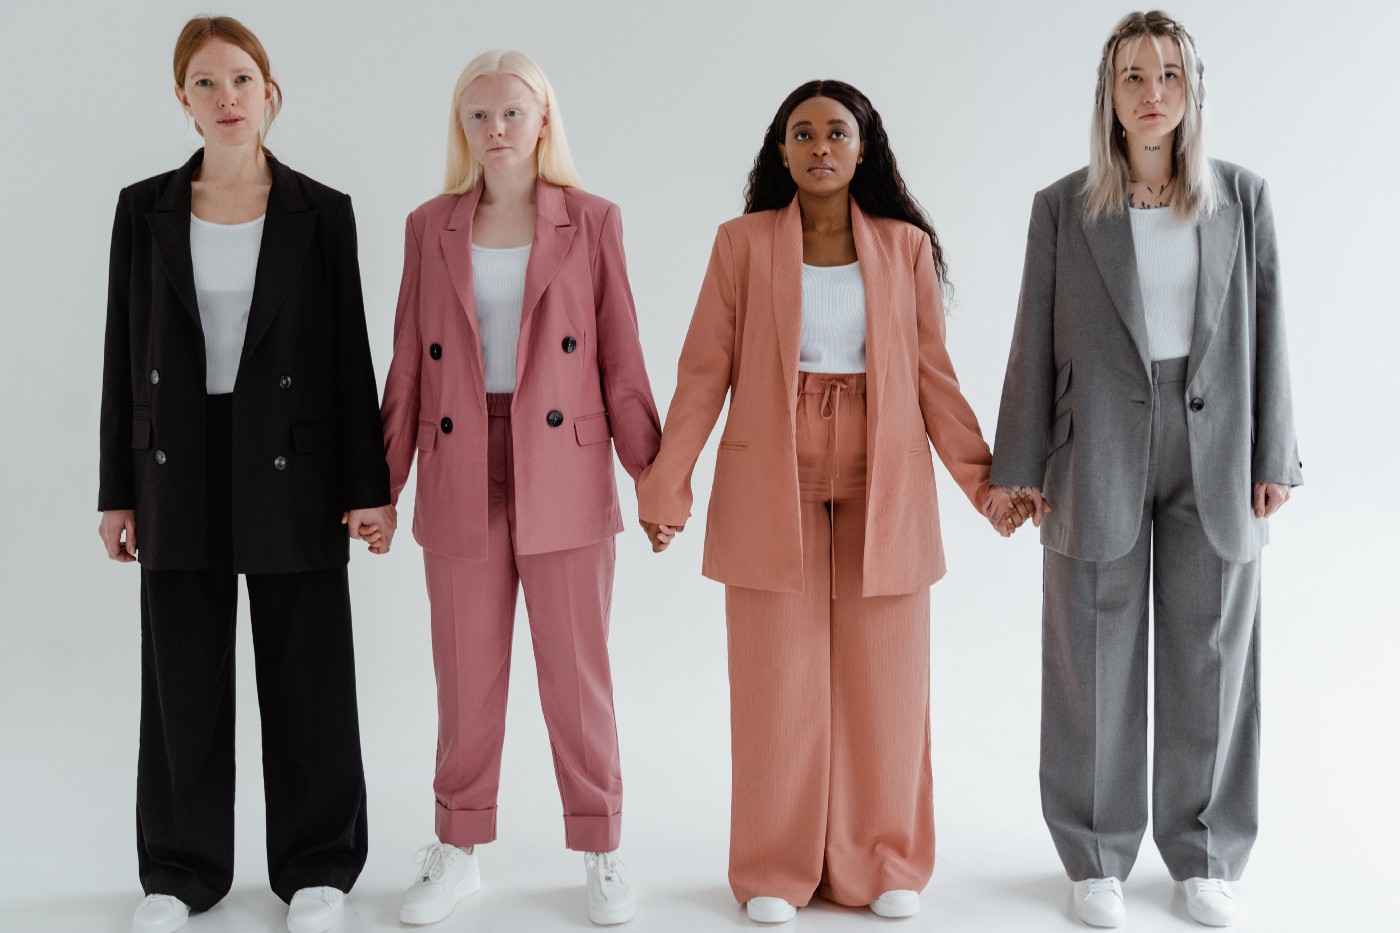 4 Women Standing Side by Side Wearing Blazers of various colors against a white background.